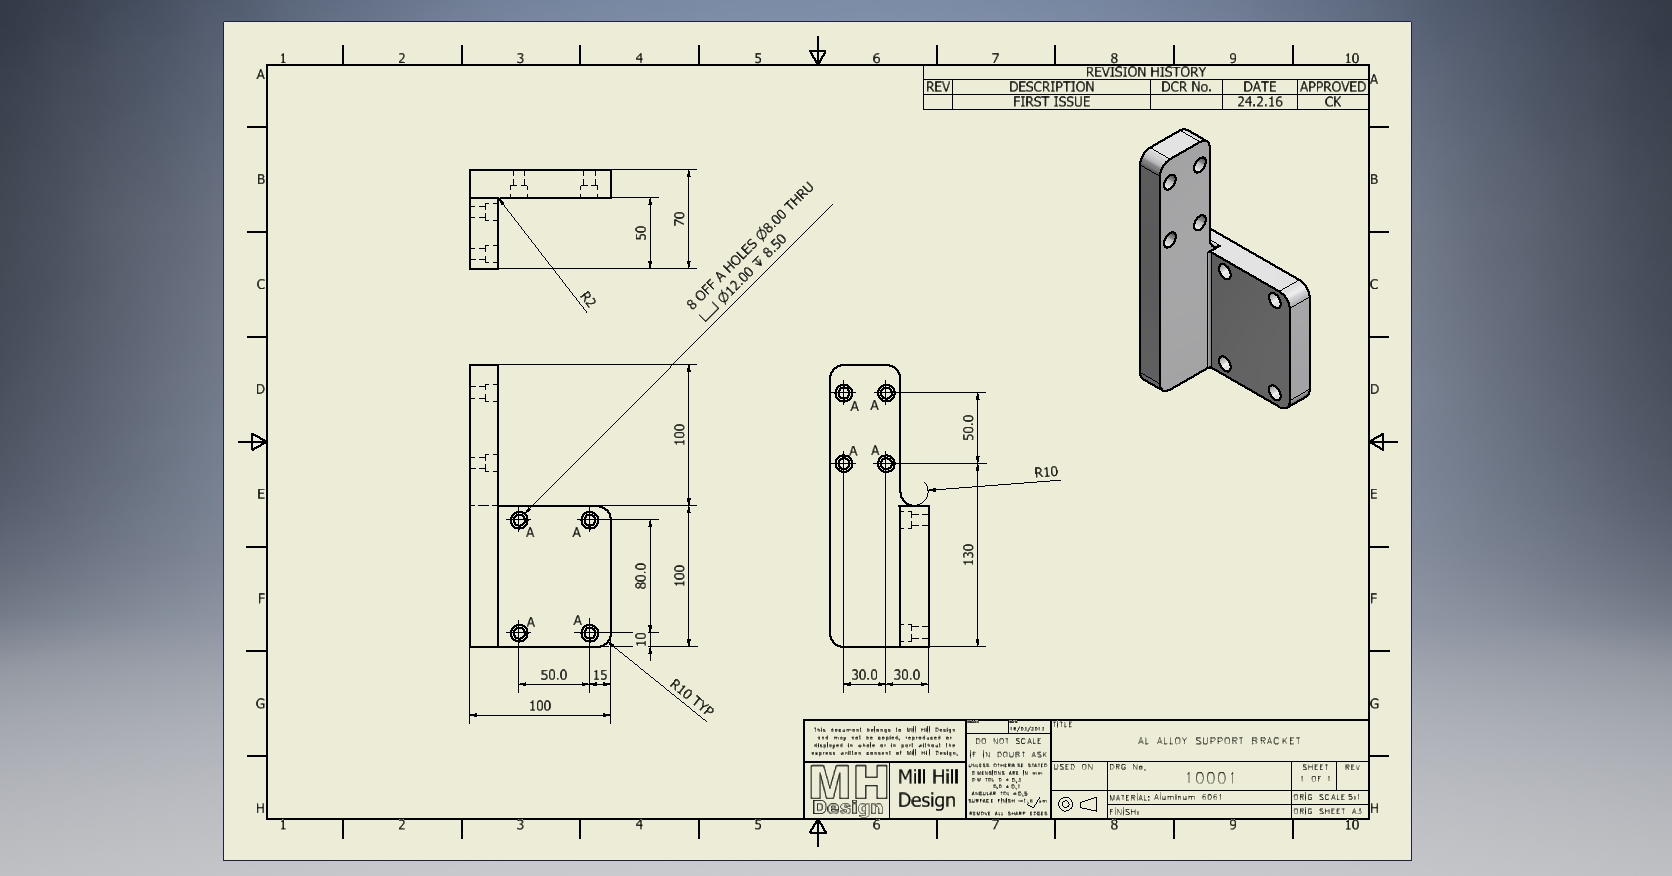 1672x876 Simple Manufacturing Drawing By Millhilldesign On Cad Crowd